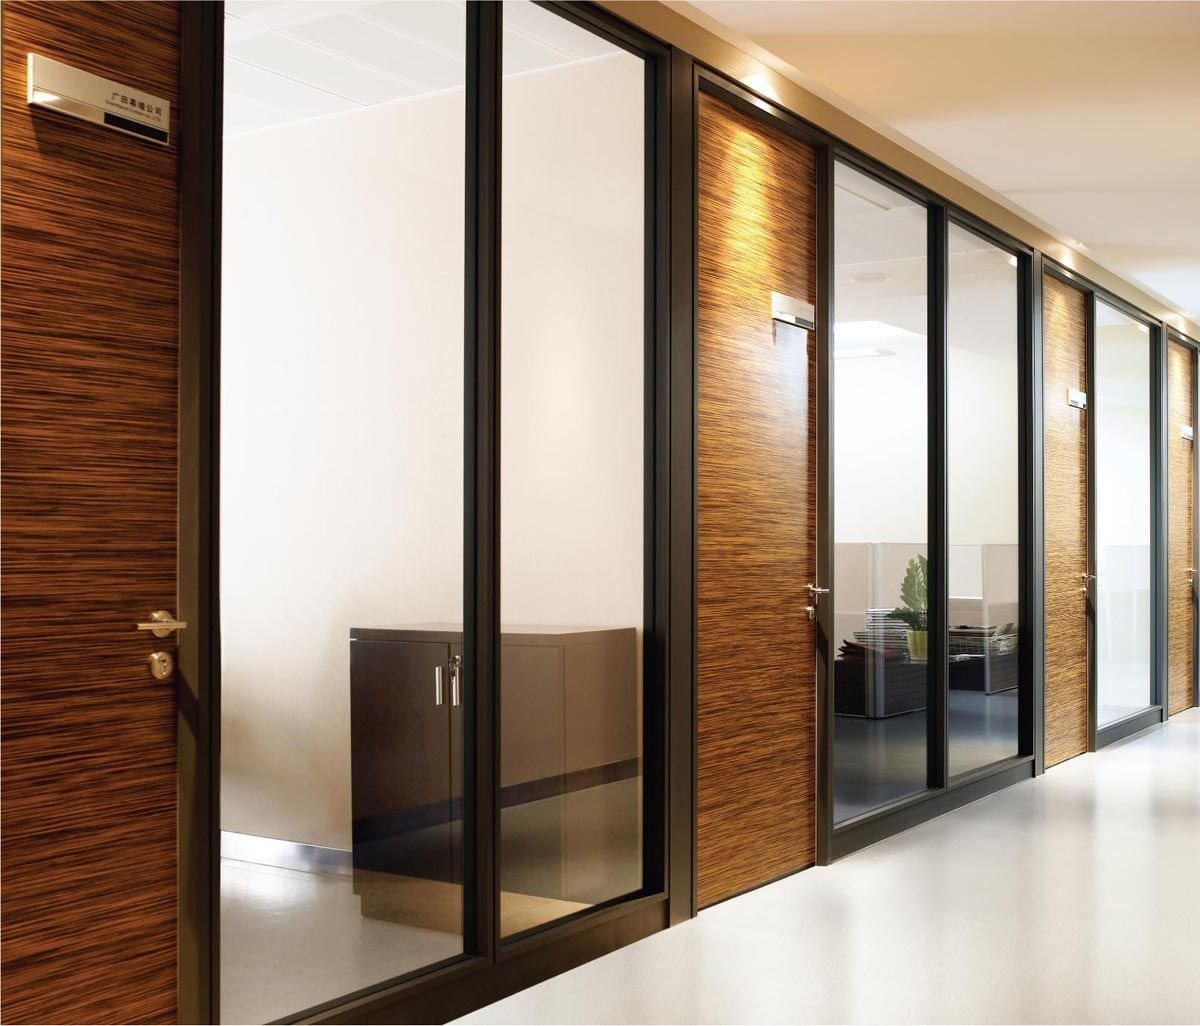 cool office partitions. Wooden Office Partitions. Partitions - When I Was A Boy That Needed To Cool N